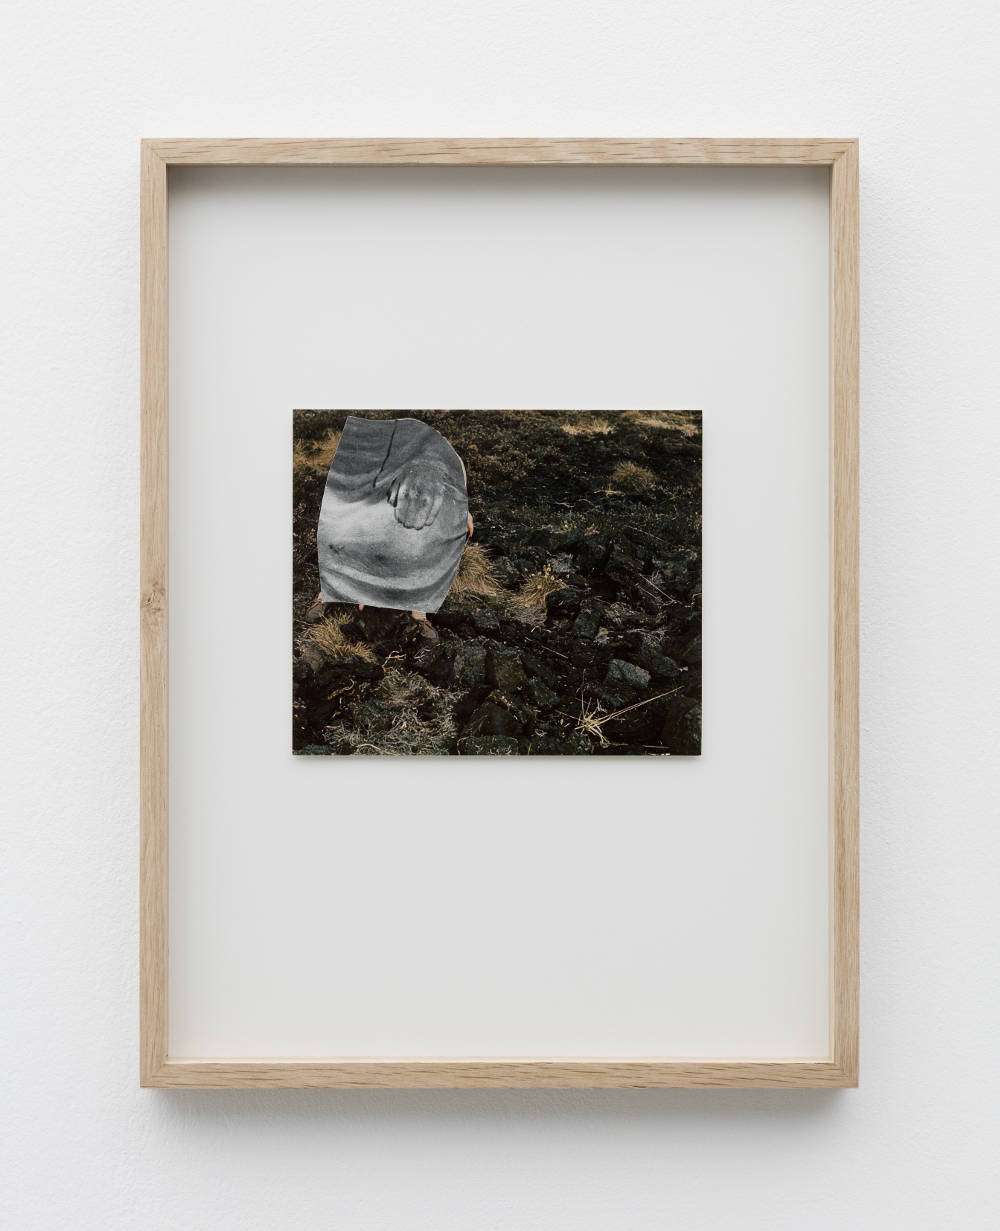 Eleonore False, Camouflage #5, 2019. Collage. Framed Dimensions: 38 x 29 cm (14.96 x 11.42 inches) Courtesy of the artist & VNH Gallery. Photo: Claire Dorn